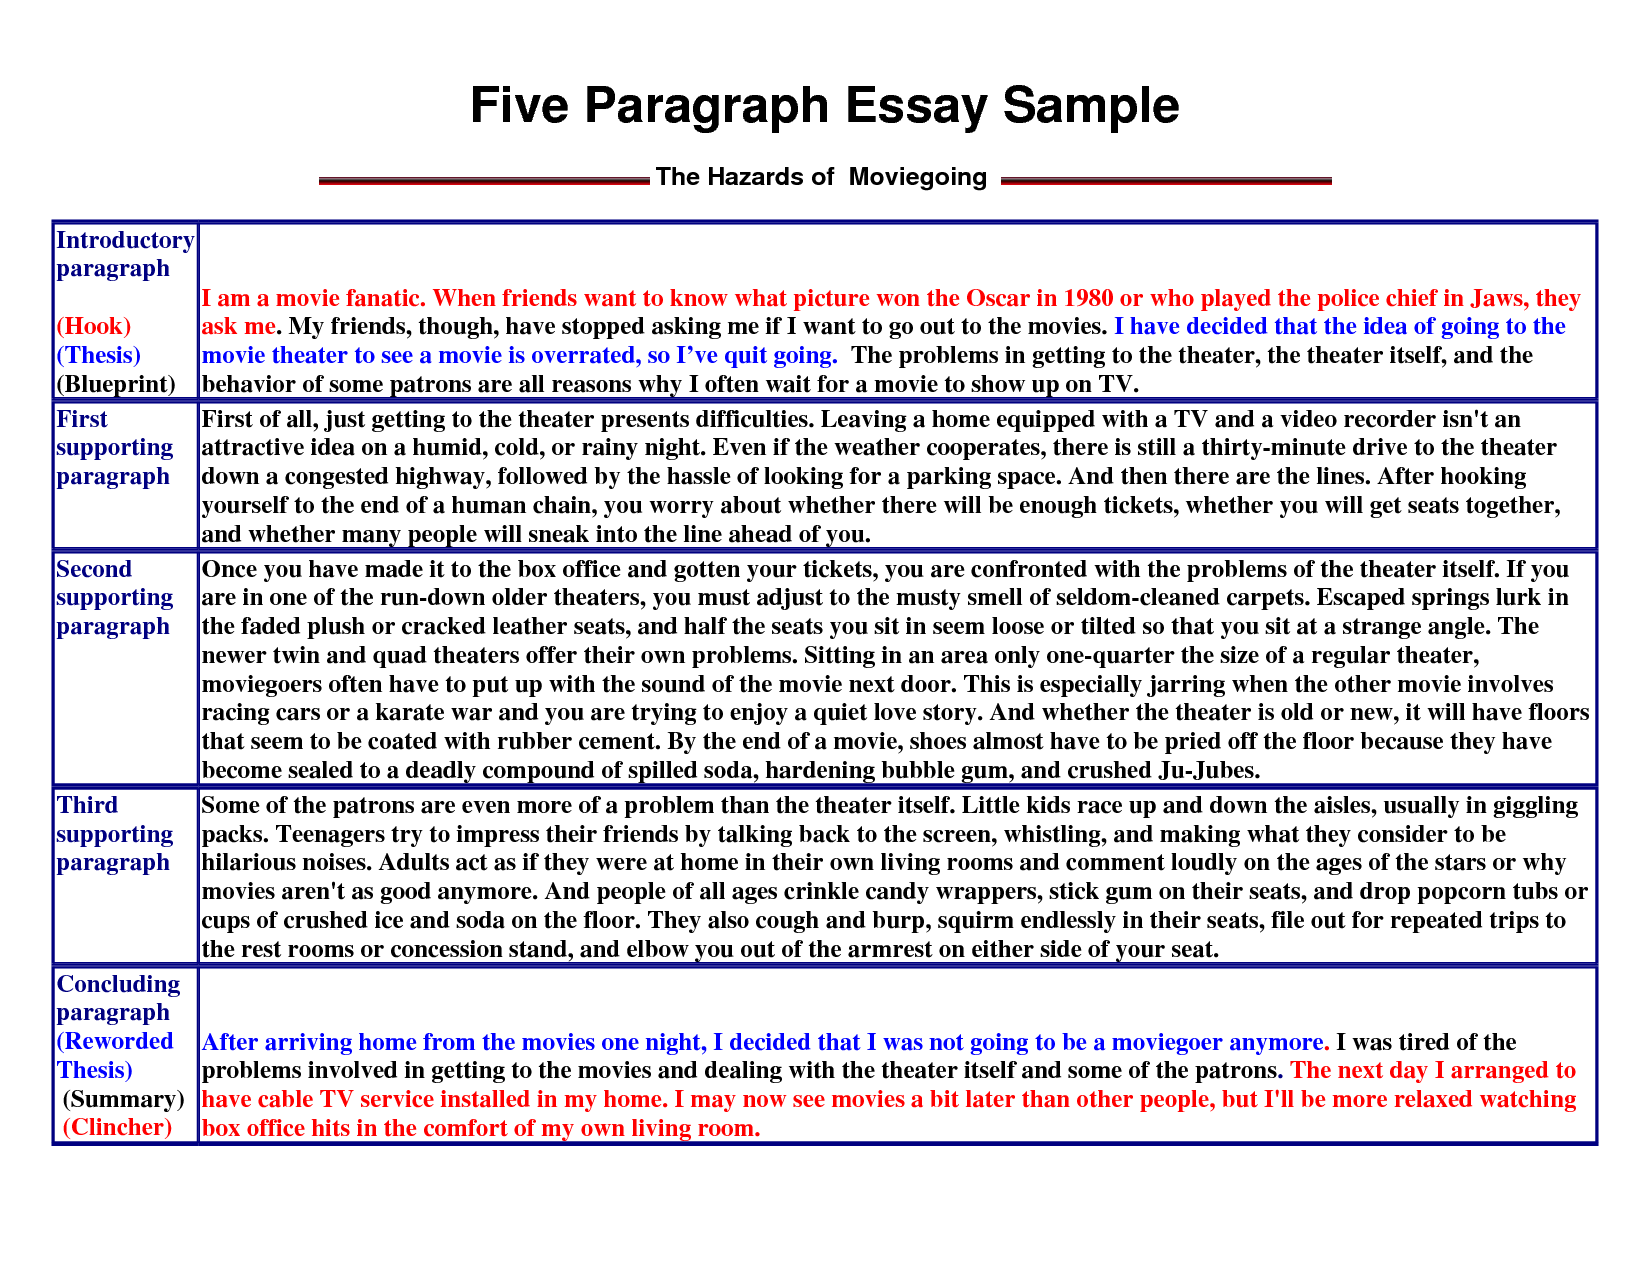 prompts for writing 5 paragraph essays